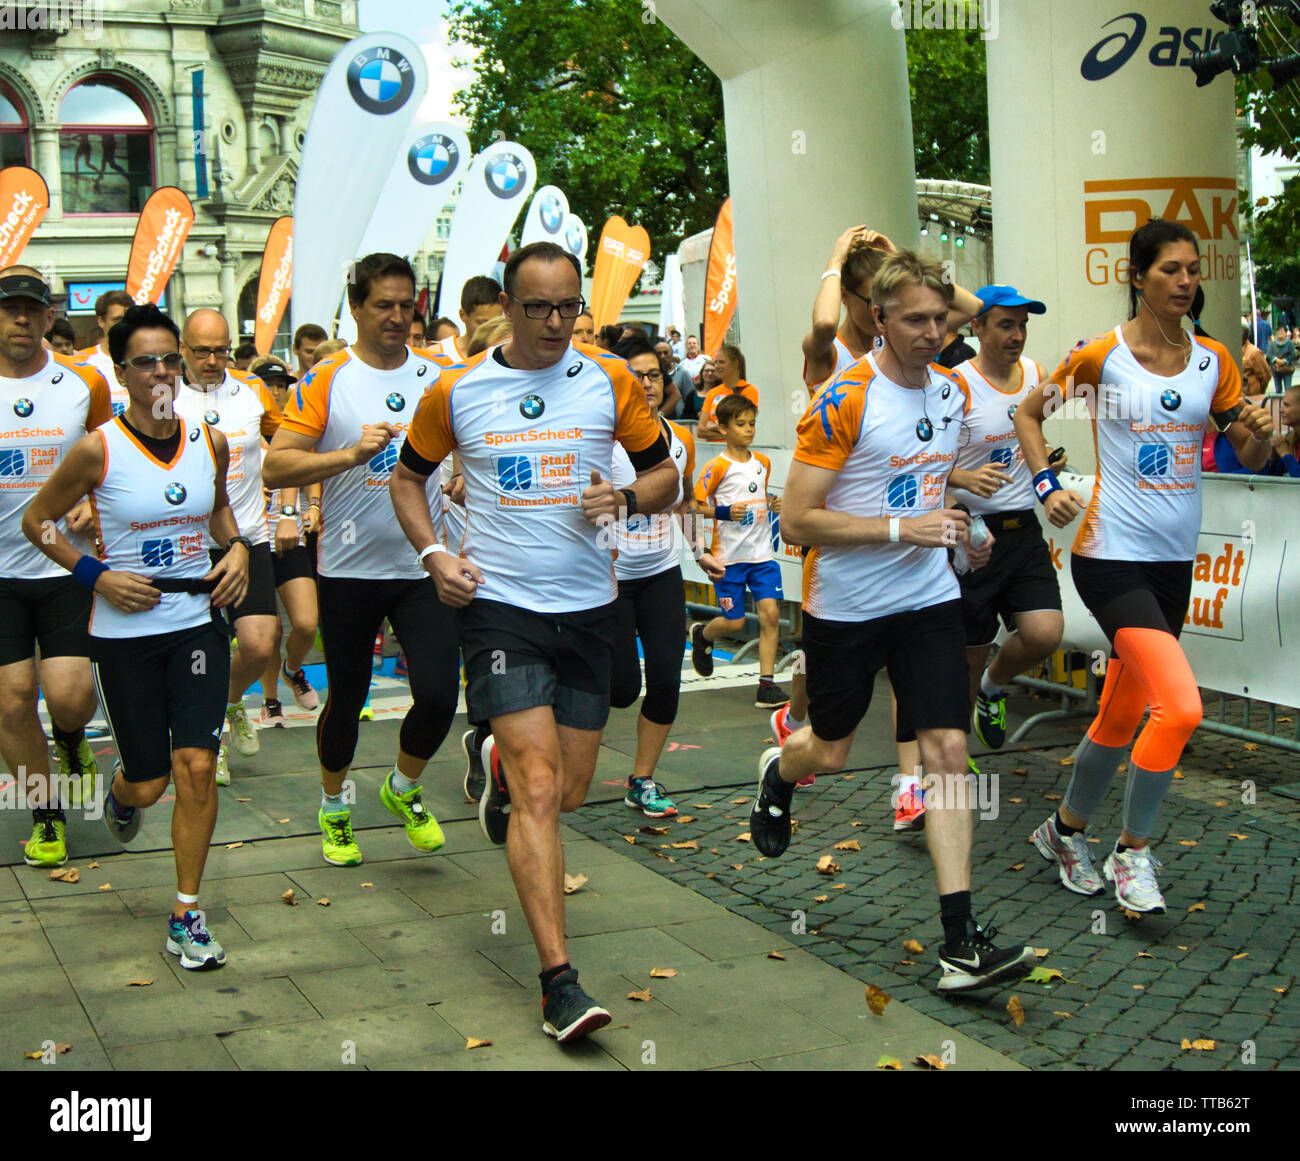 Braunschweig, Germany, September 18., 2016: Runners shortly after the start of the 10 kilometre city run - Stock Image